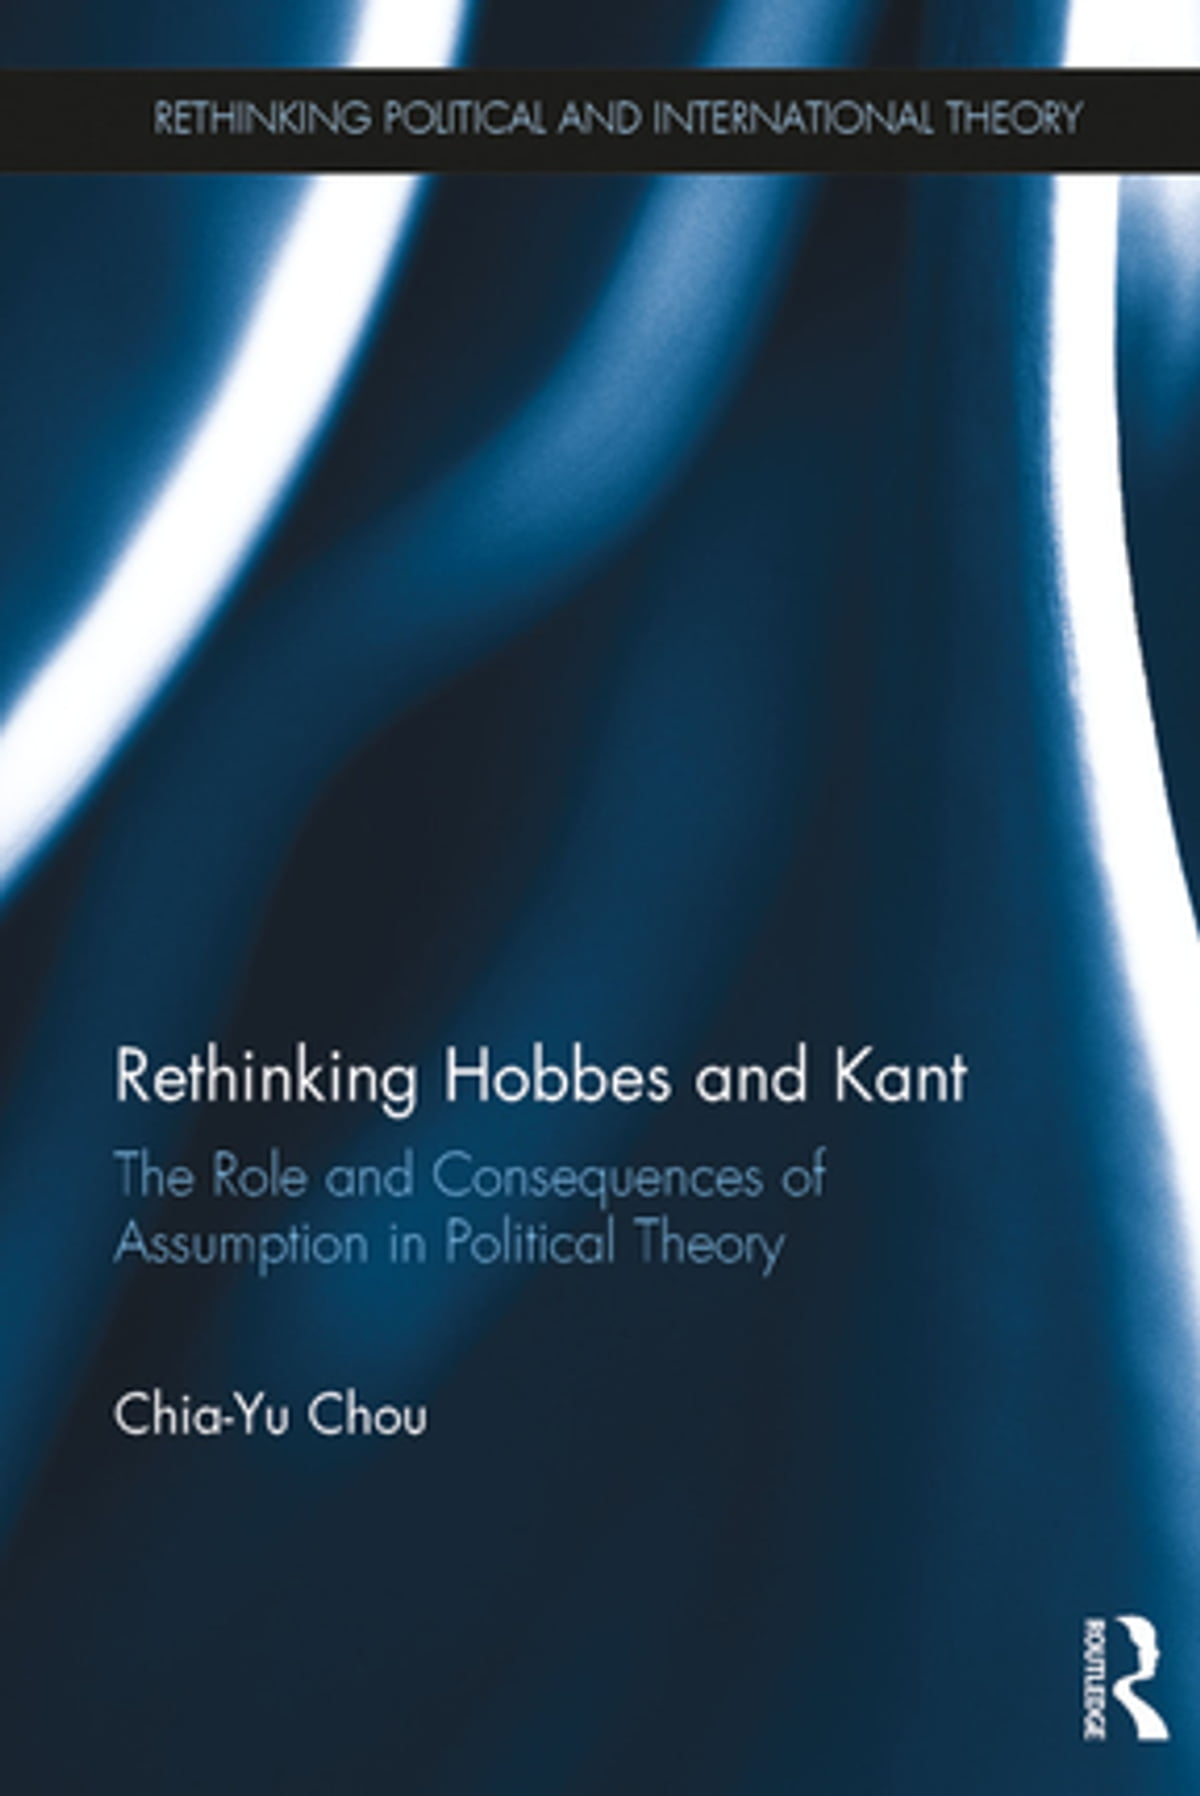 Pareto and Political Theory (Routledge Studies in Social and Political Thought)